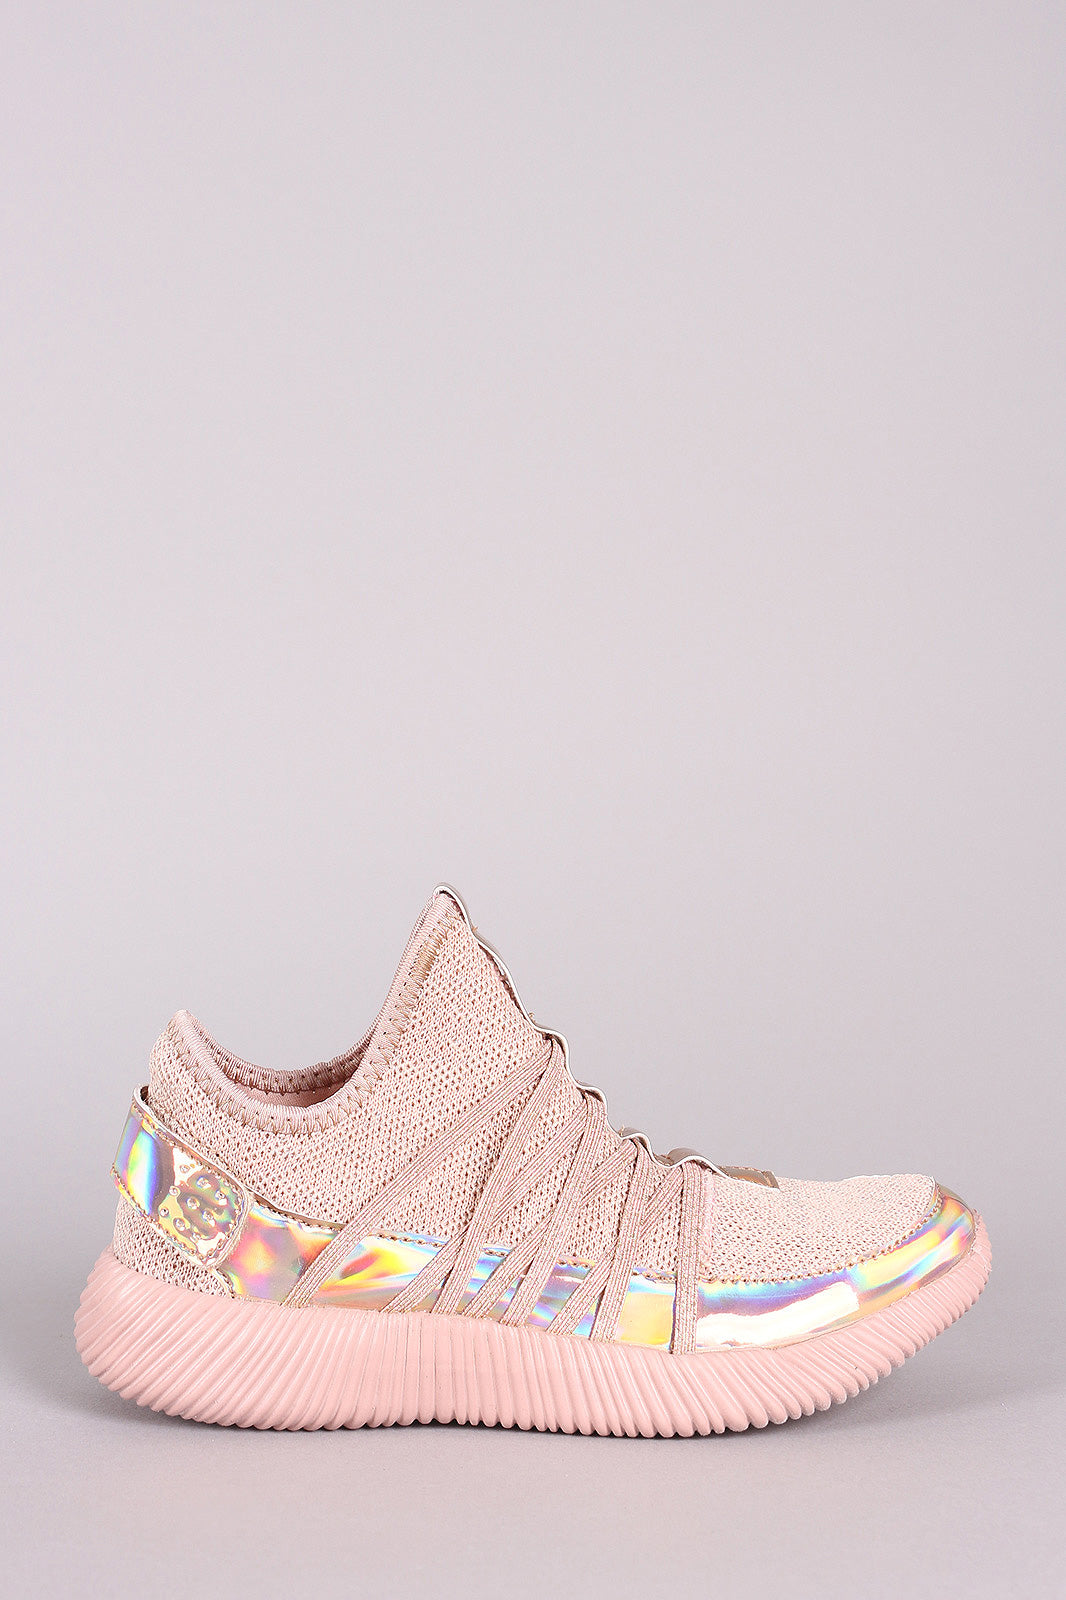 Holographic Knit Strappy Slip-On Rigged Sneaker